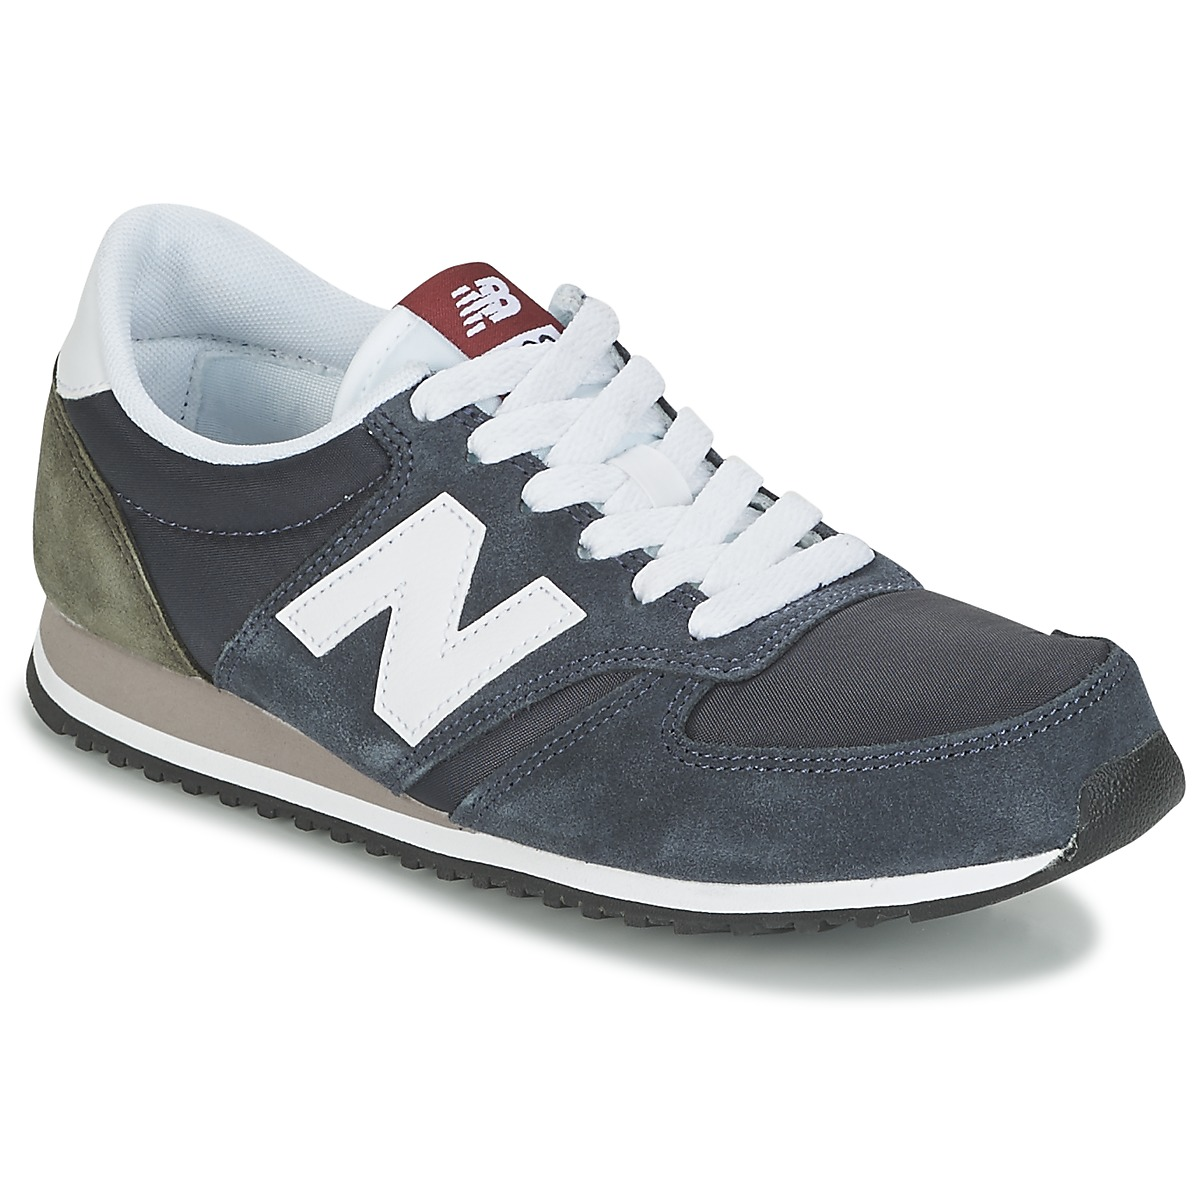 chaussures new balance homme soldes. Black Bedroom Furniture Sets. Home Design Ideas